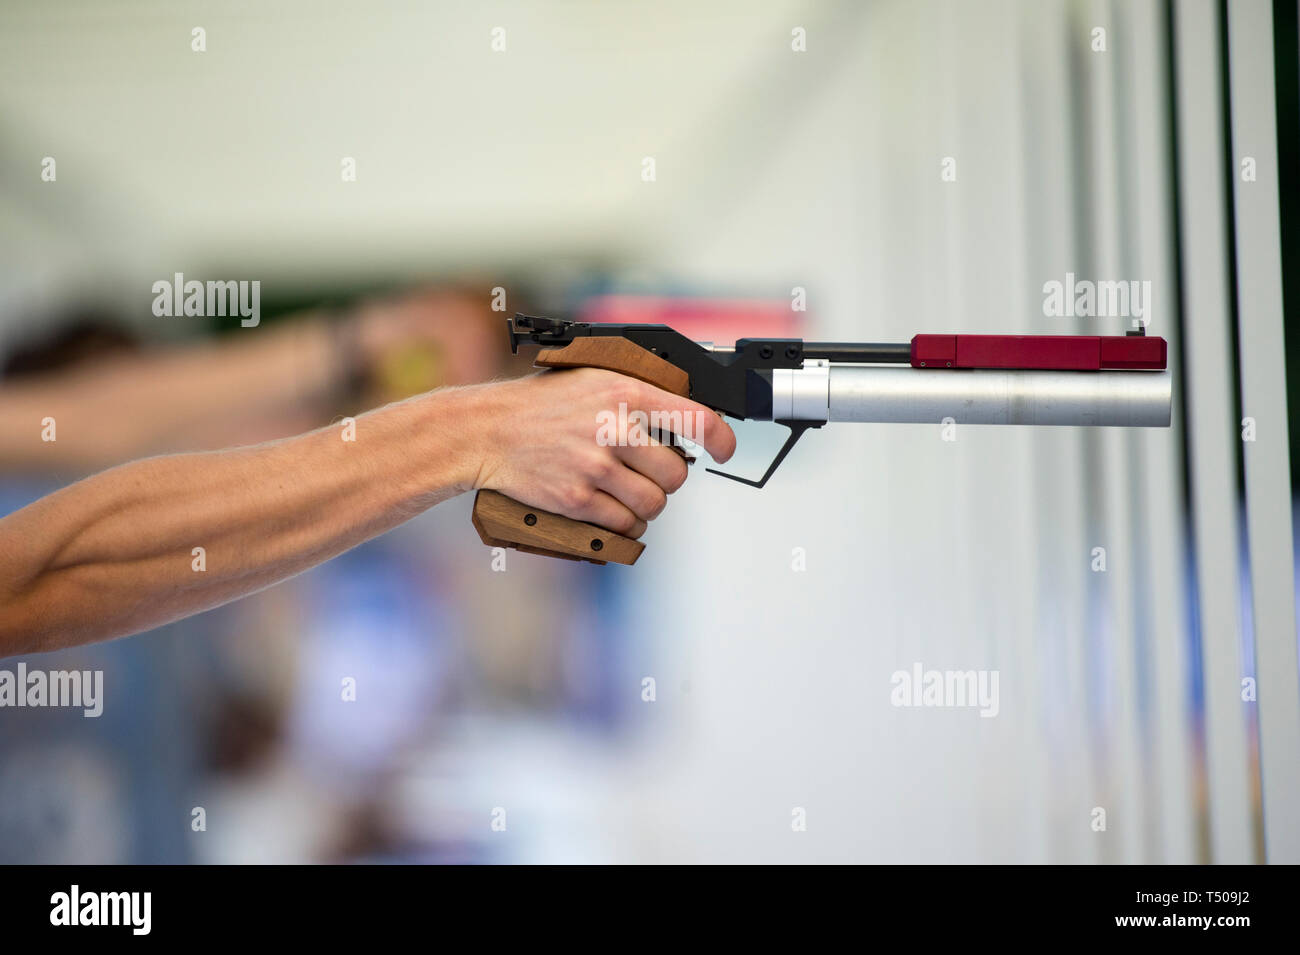 A man is shooting from a sports laser gun - Stock Image